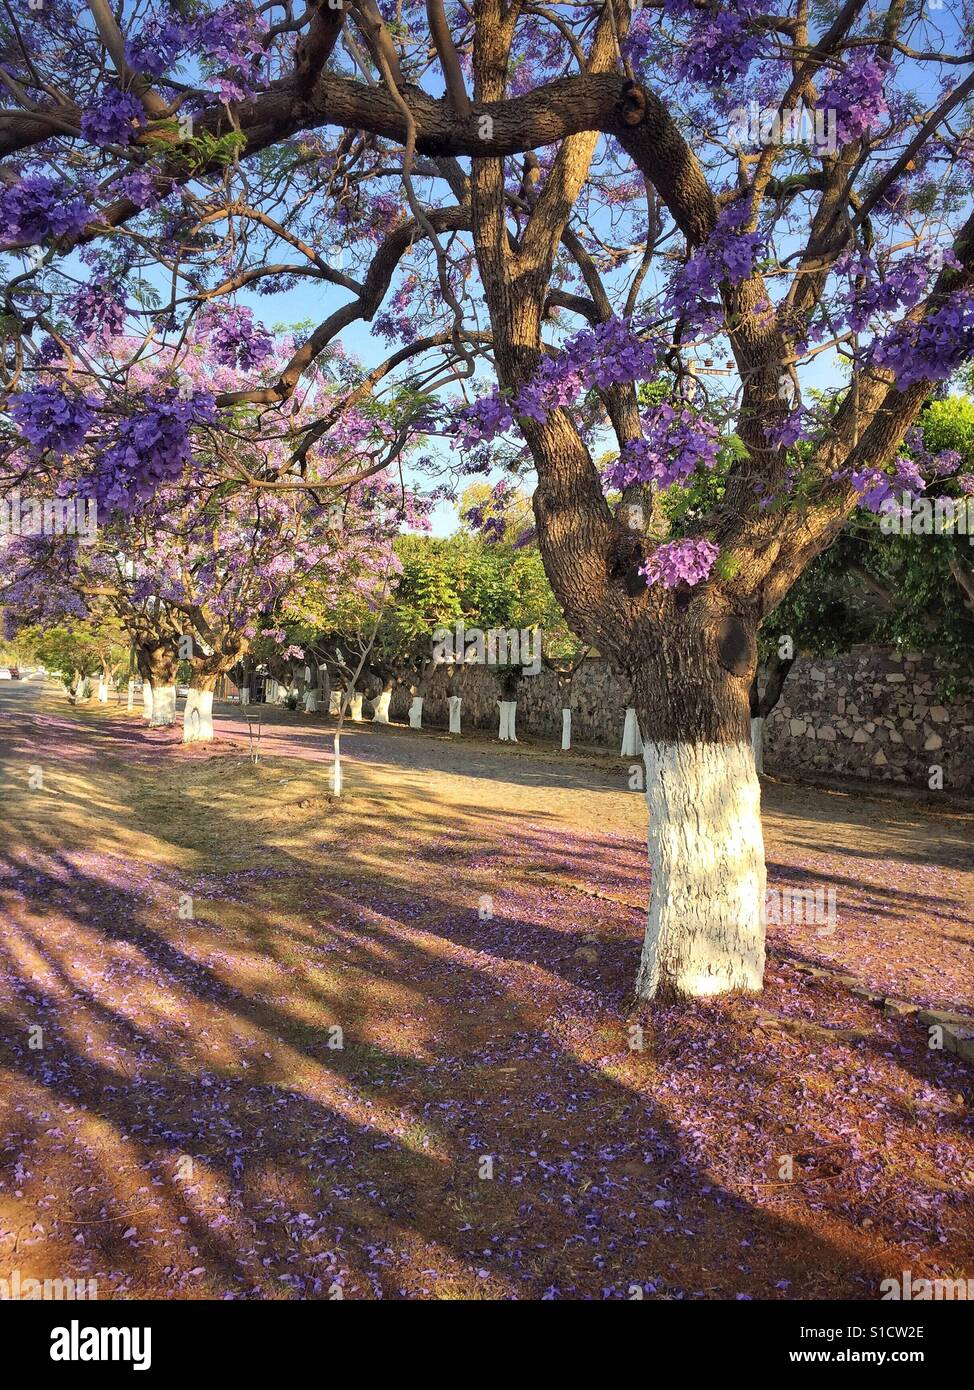 Morning sunlight filters through the purple blossom filled branches of Jacaranda trees lining the streets in Ajijic Stock Photo